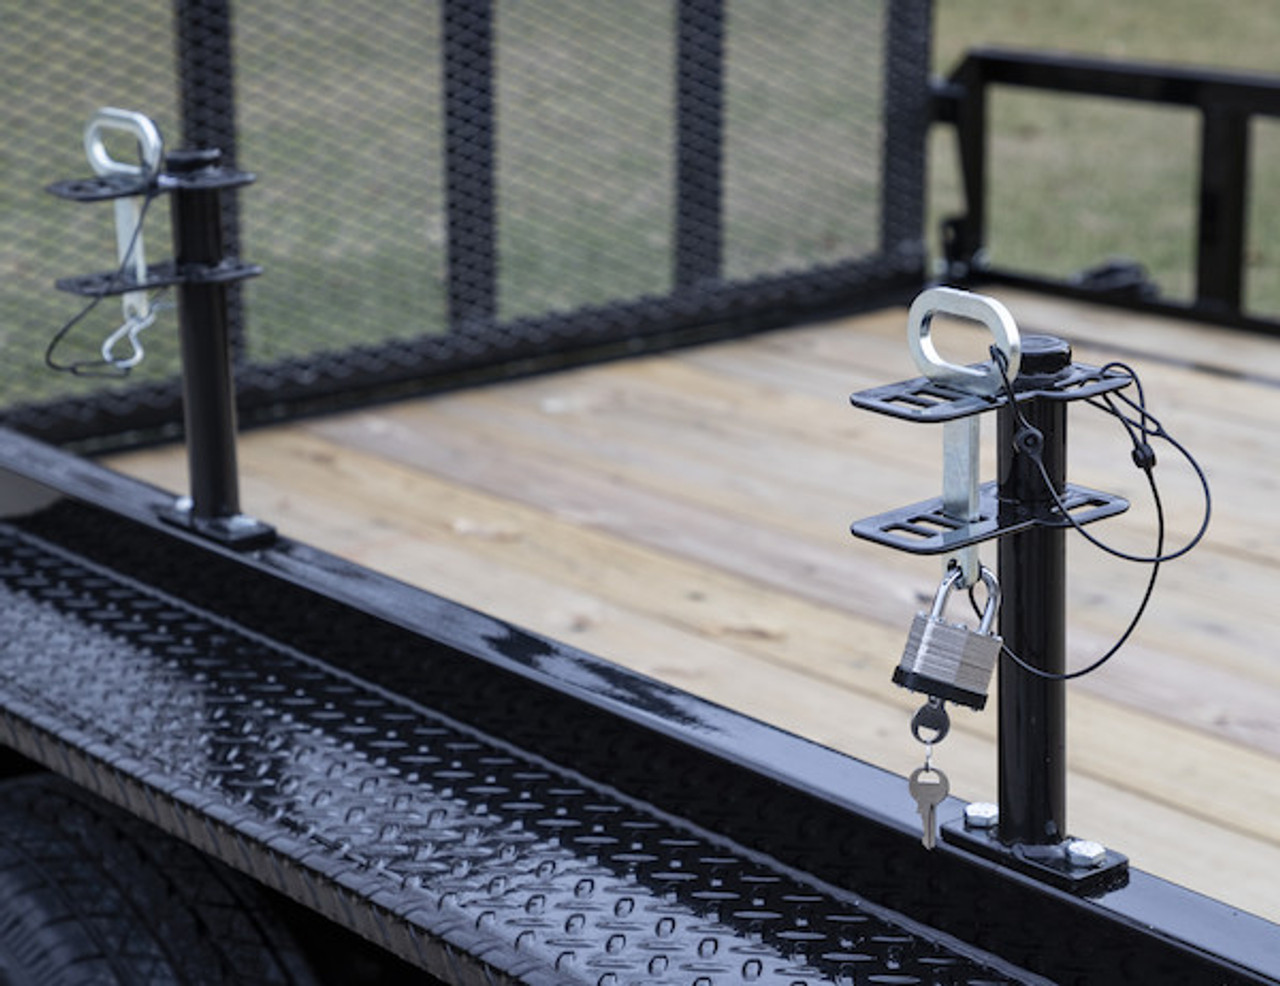 Buyers LT16 Lockable Trimmer Rack Carrier Holder for 1 Trimmer for Trailers and Trucks Picture # 1